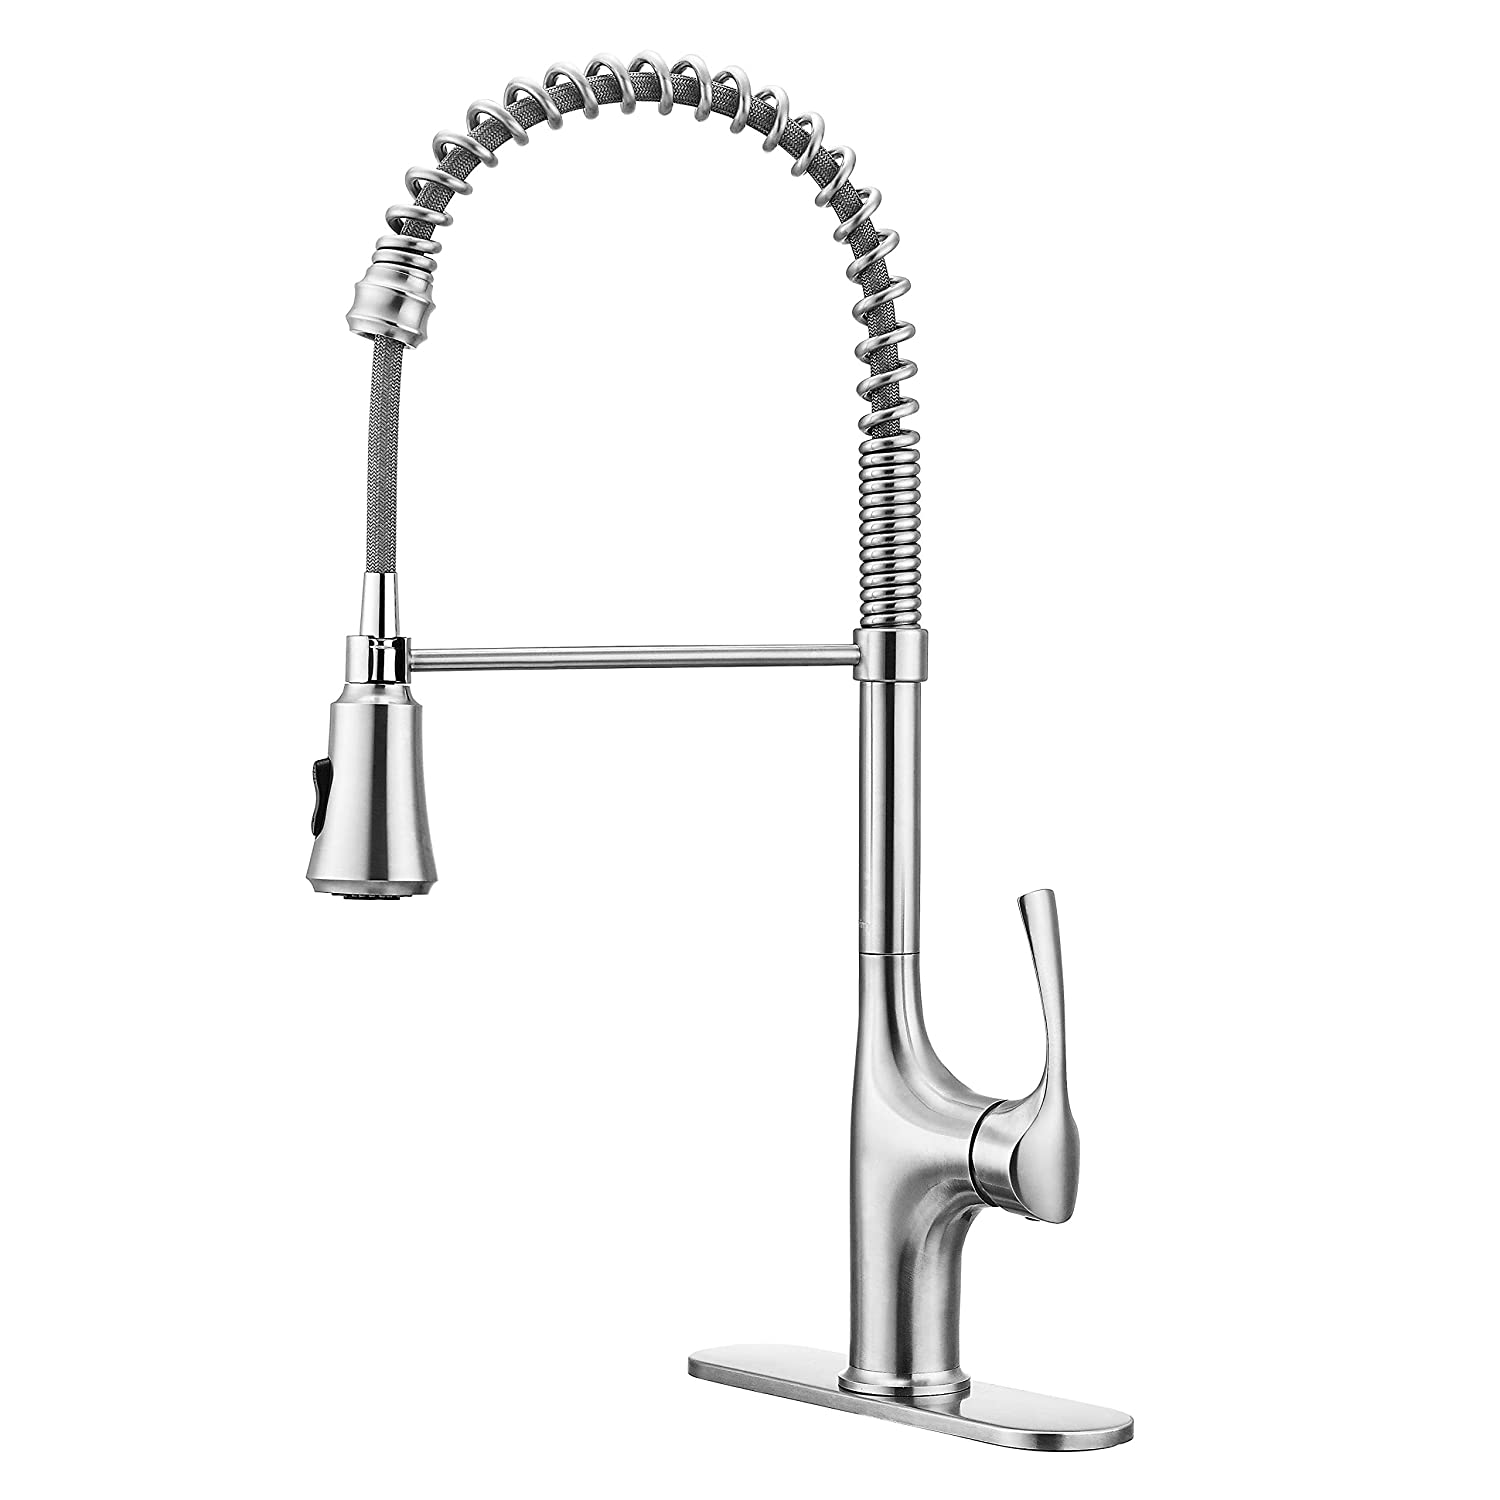 Primy Replacement Kitchen Faucet with Pull Down Sprayer, 23-1 2 Height Commercial Pre-Rinse Faucet, Modern High-Arc with Single Handle and Deck Plate, Heavy Duty Stainless Steel, Lead-Free